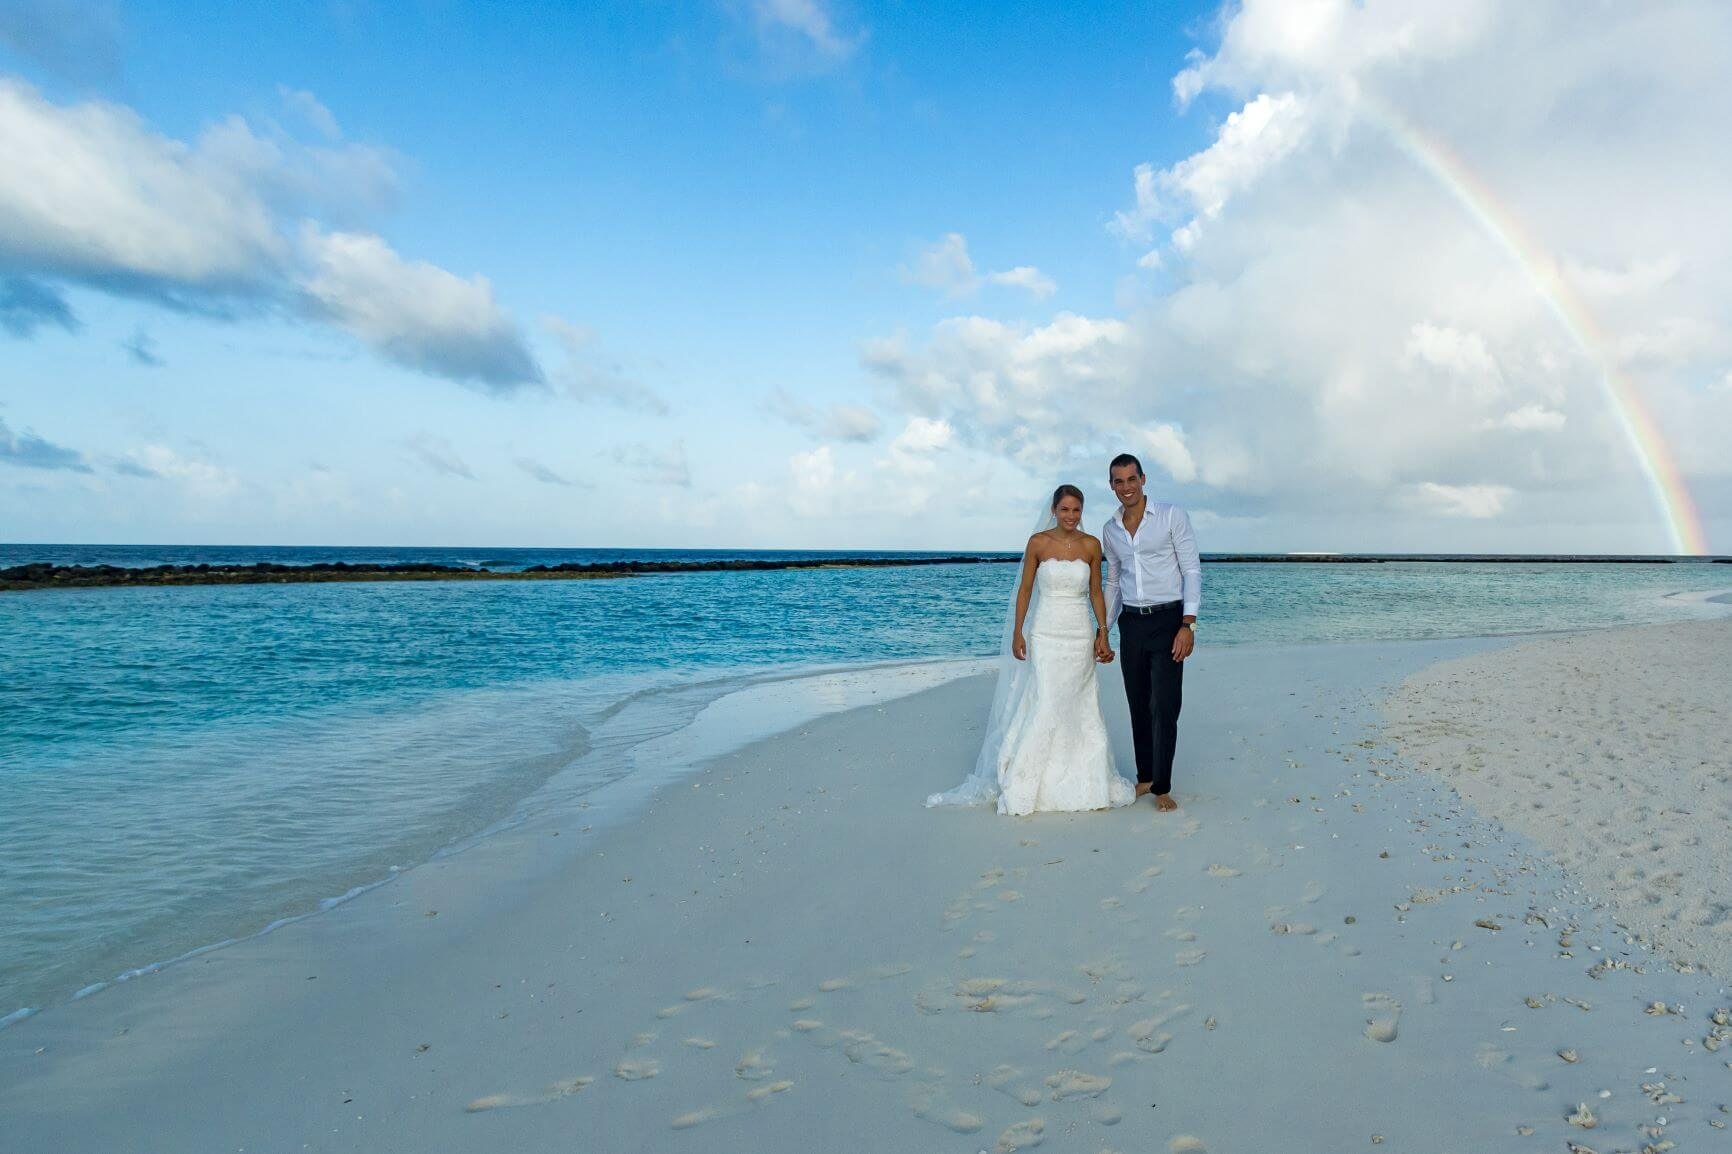 Five common destination wedding watch-outs